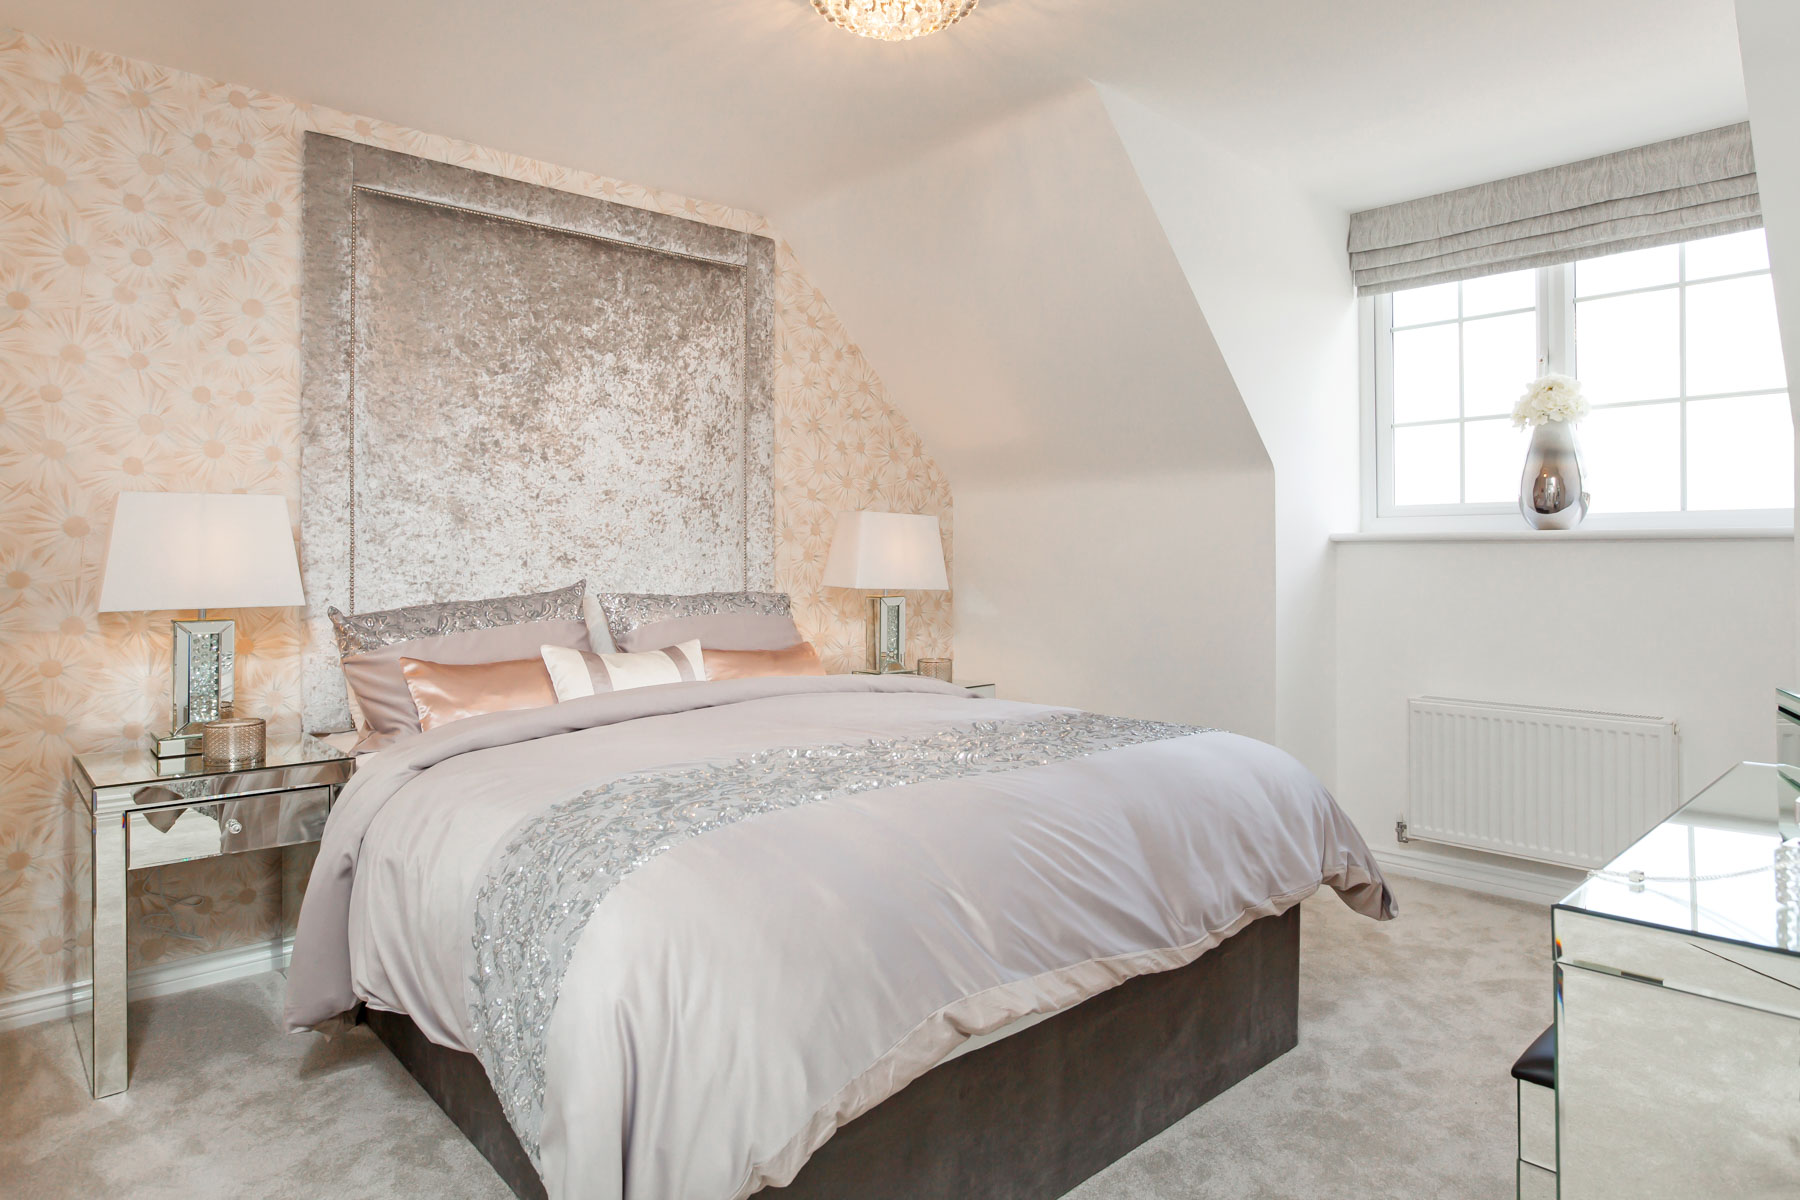 TW Yorkshire_The_Wickets_PB35_Alton_Bedroom_1_1